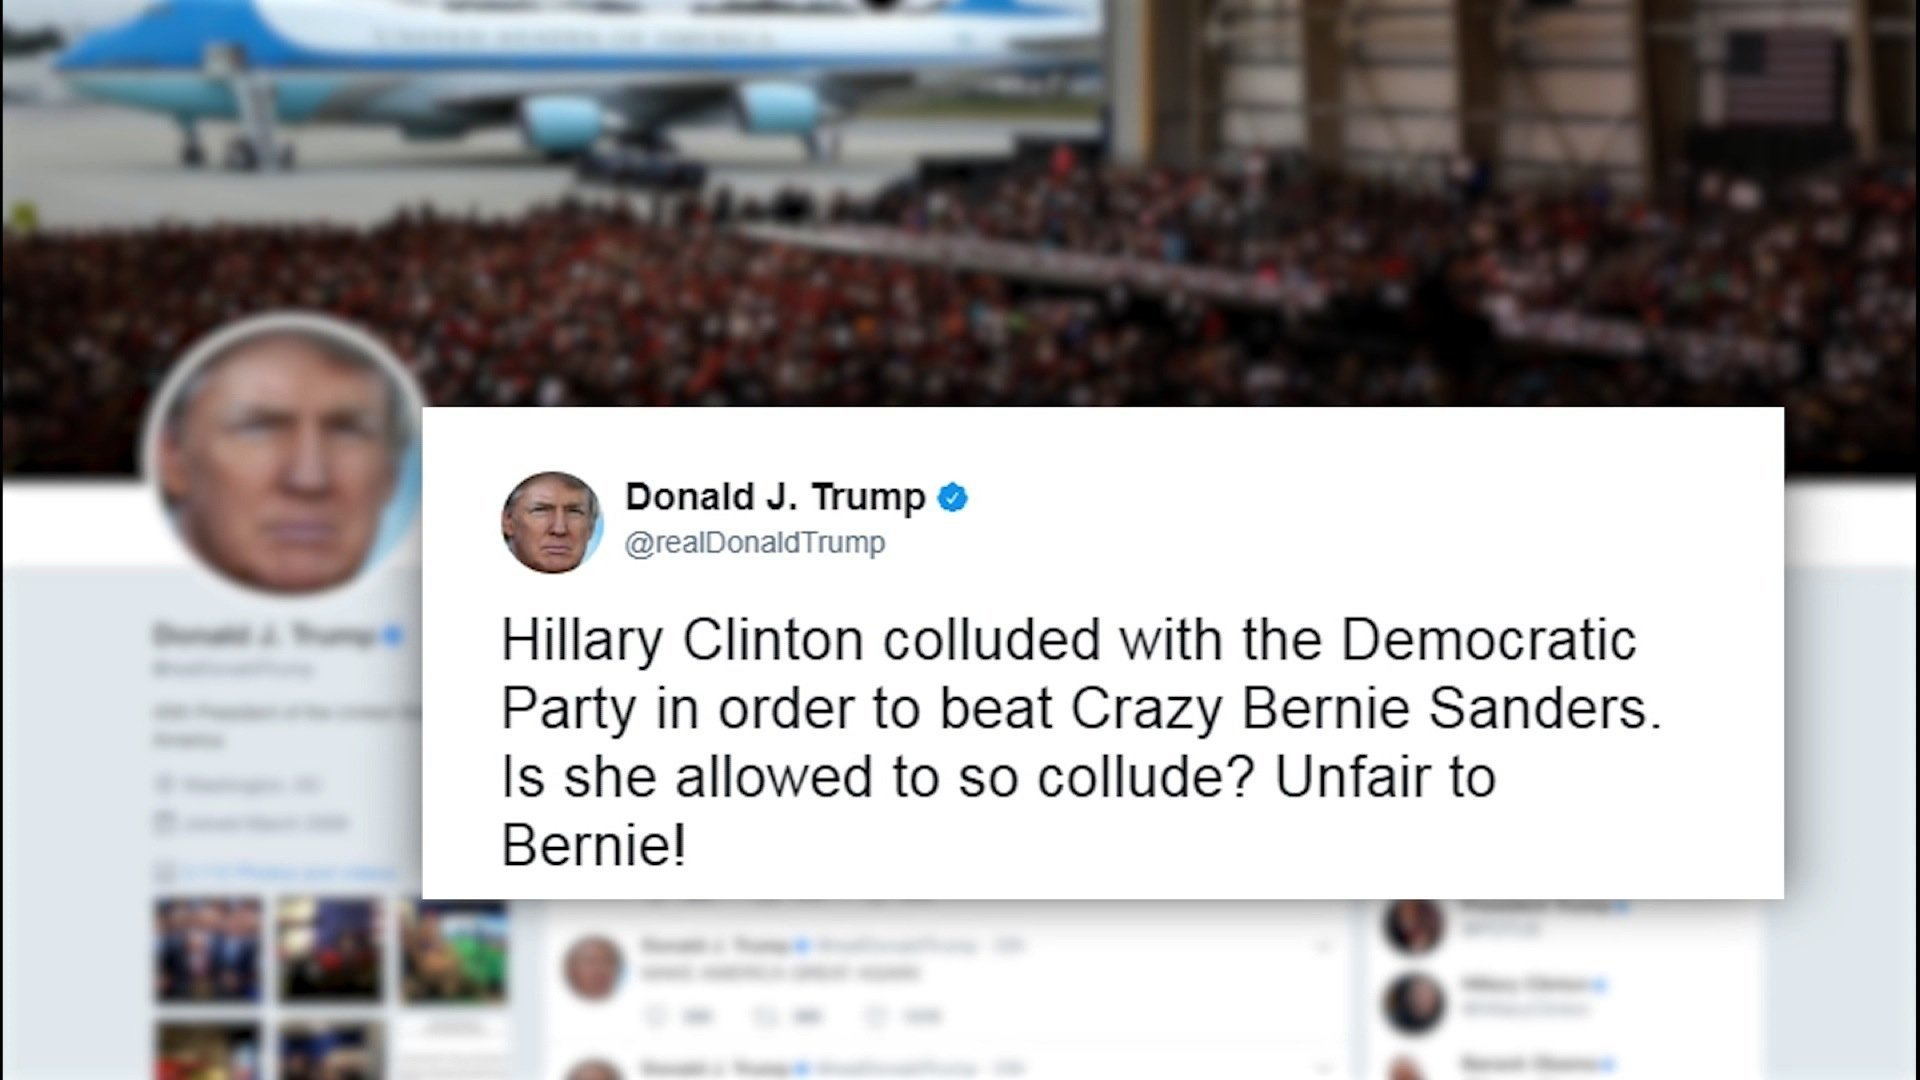 President Trump Accuses Clinton of Colluding With Democrats to Defeat Sanders